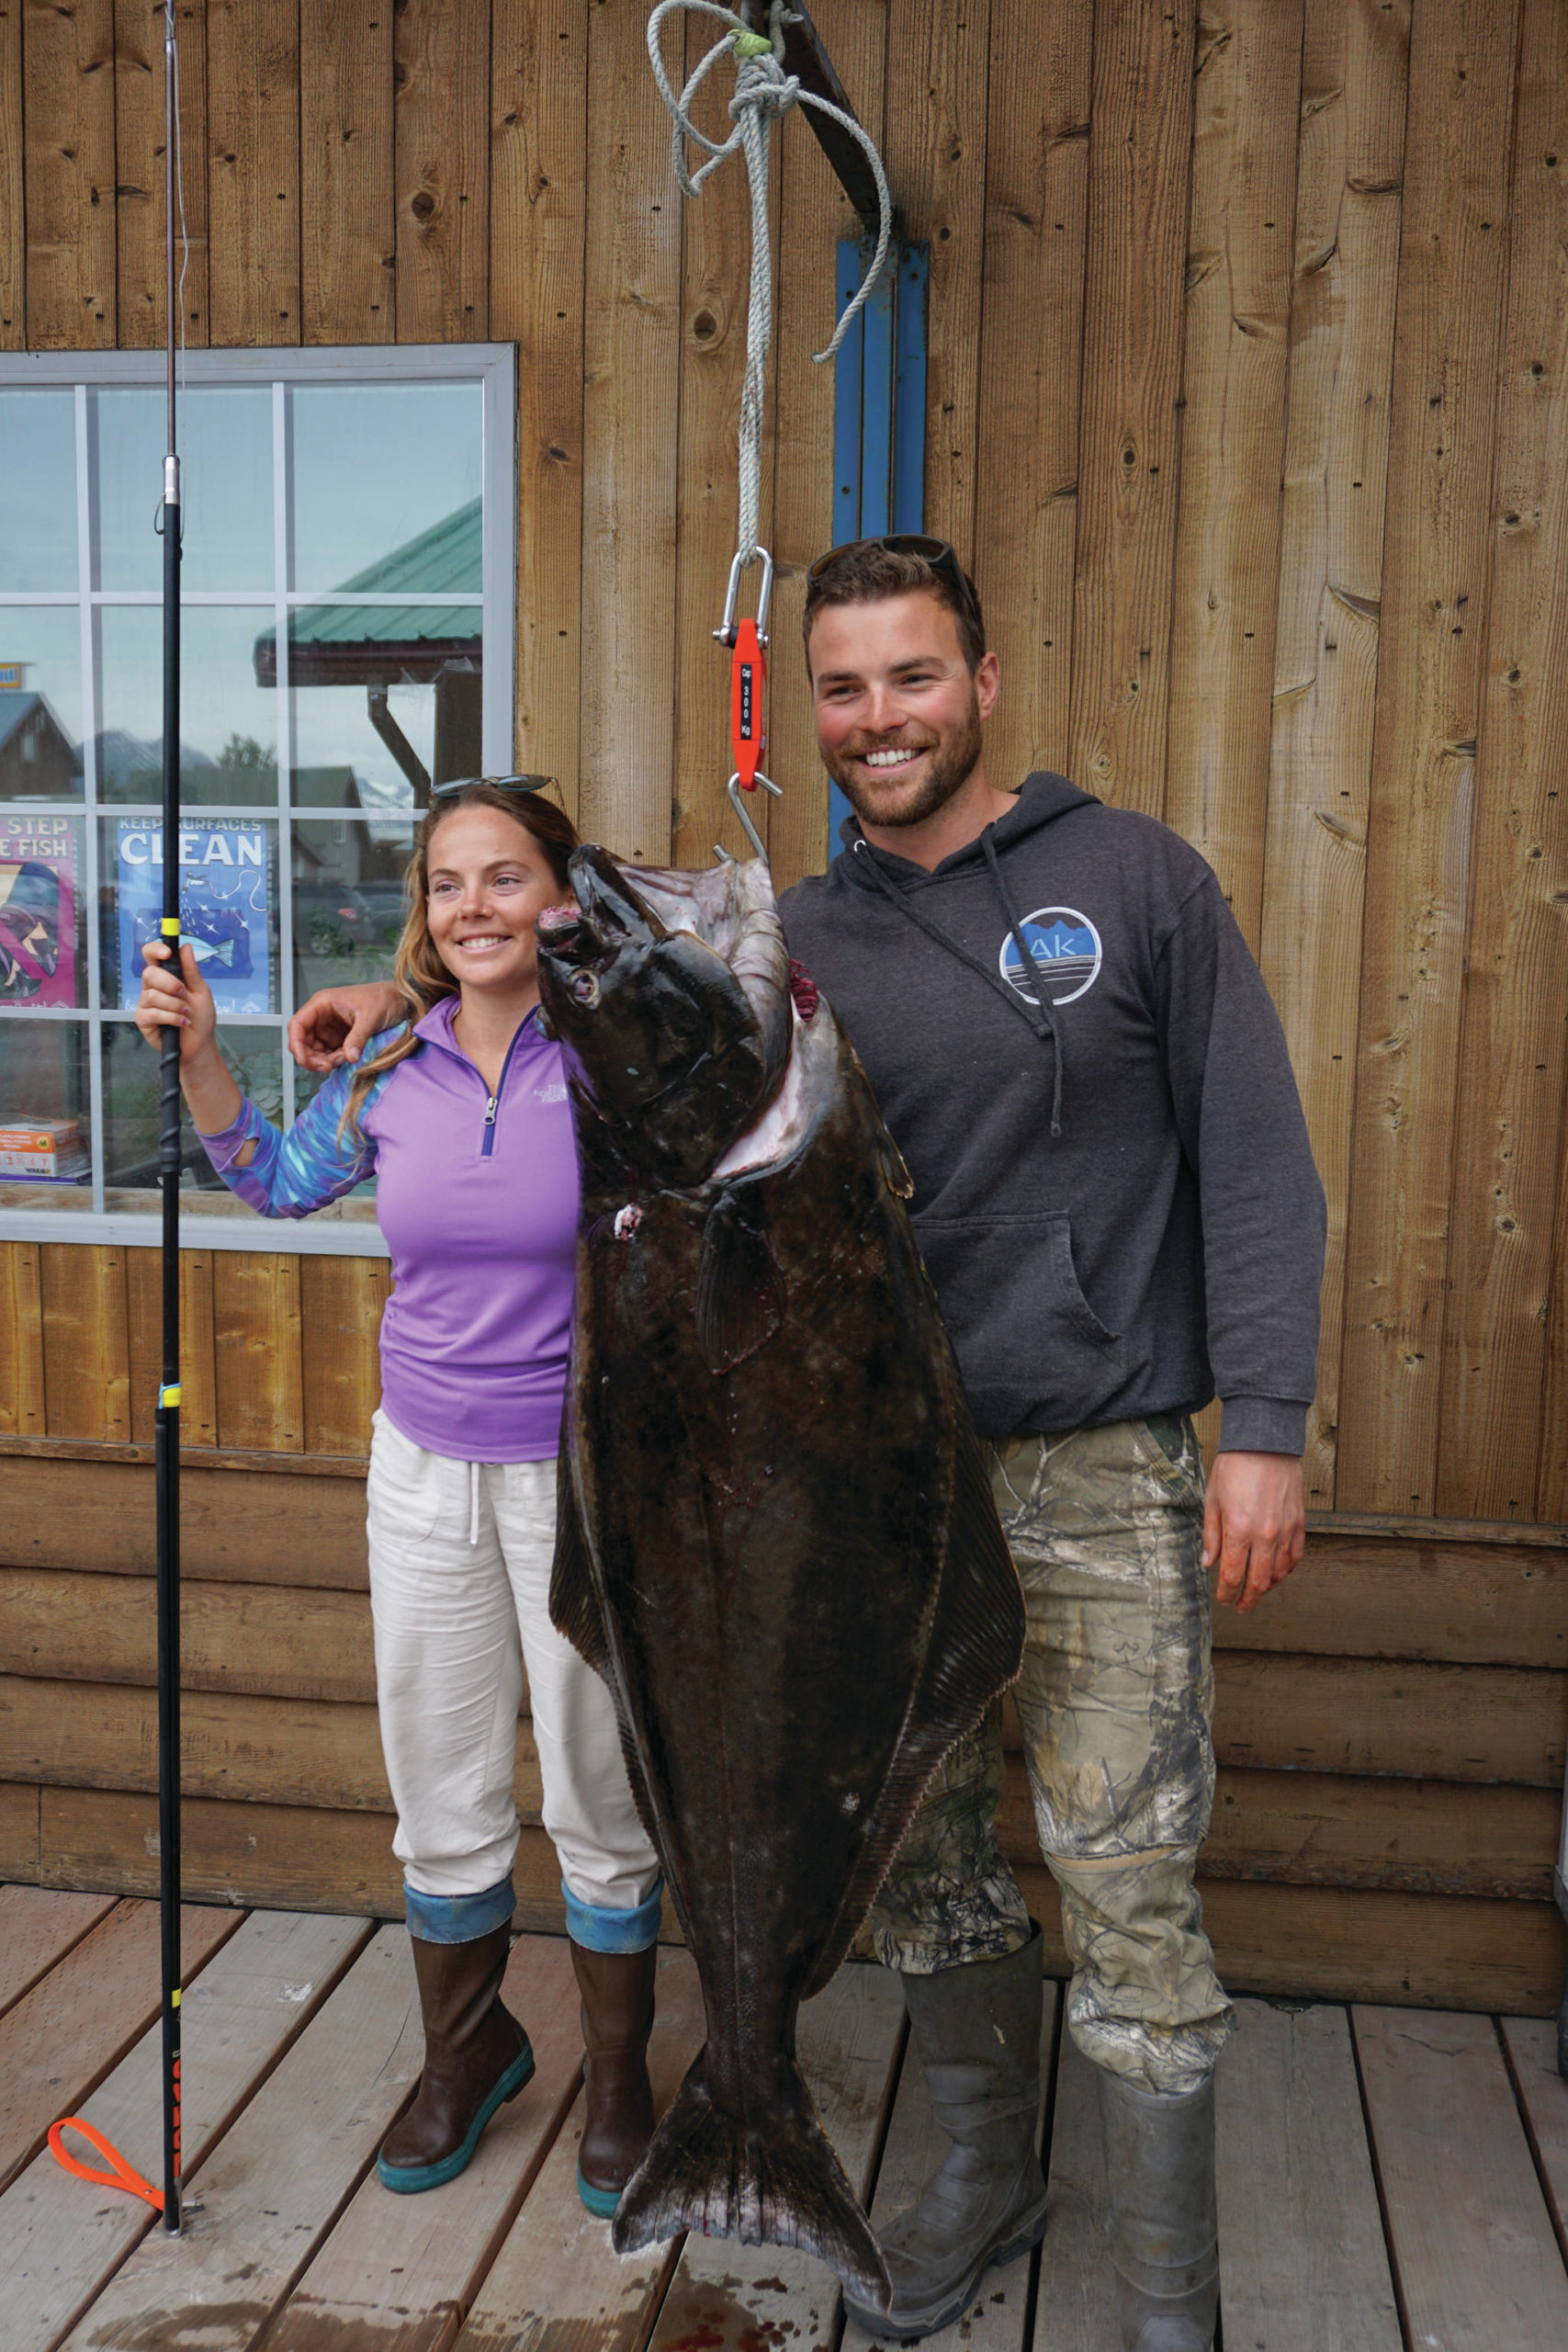 Lisa Stengel of Fort Lauderdale, Florida, poses for a photo with Capt. Brian Reid of the Castle Cape on Monday, July 12, 2021, at Coal Point Seafoods in Homer, Alaska, with a 71.4-pound halibut that she caught with a pole spear while free diving in Kachemak Bay. Stengel and her party went on a spearfishing expedition with Reid of Coldwater AK. (Photo by Michael Armstrong/Homer News)